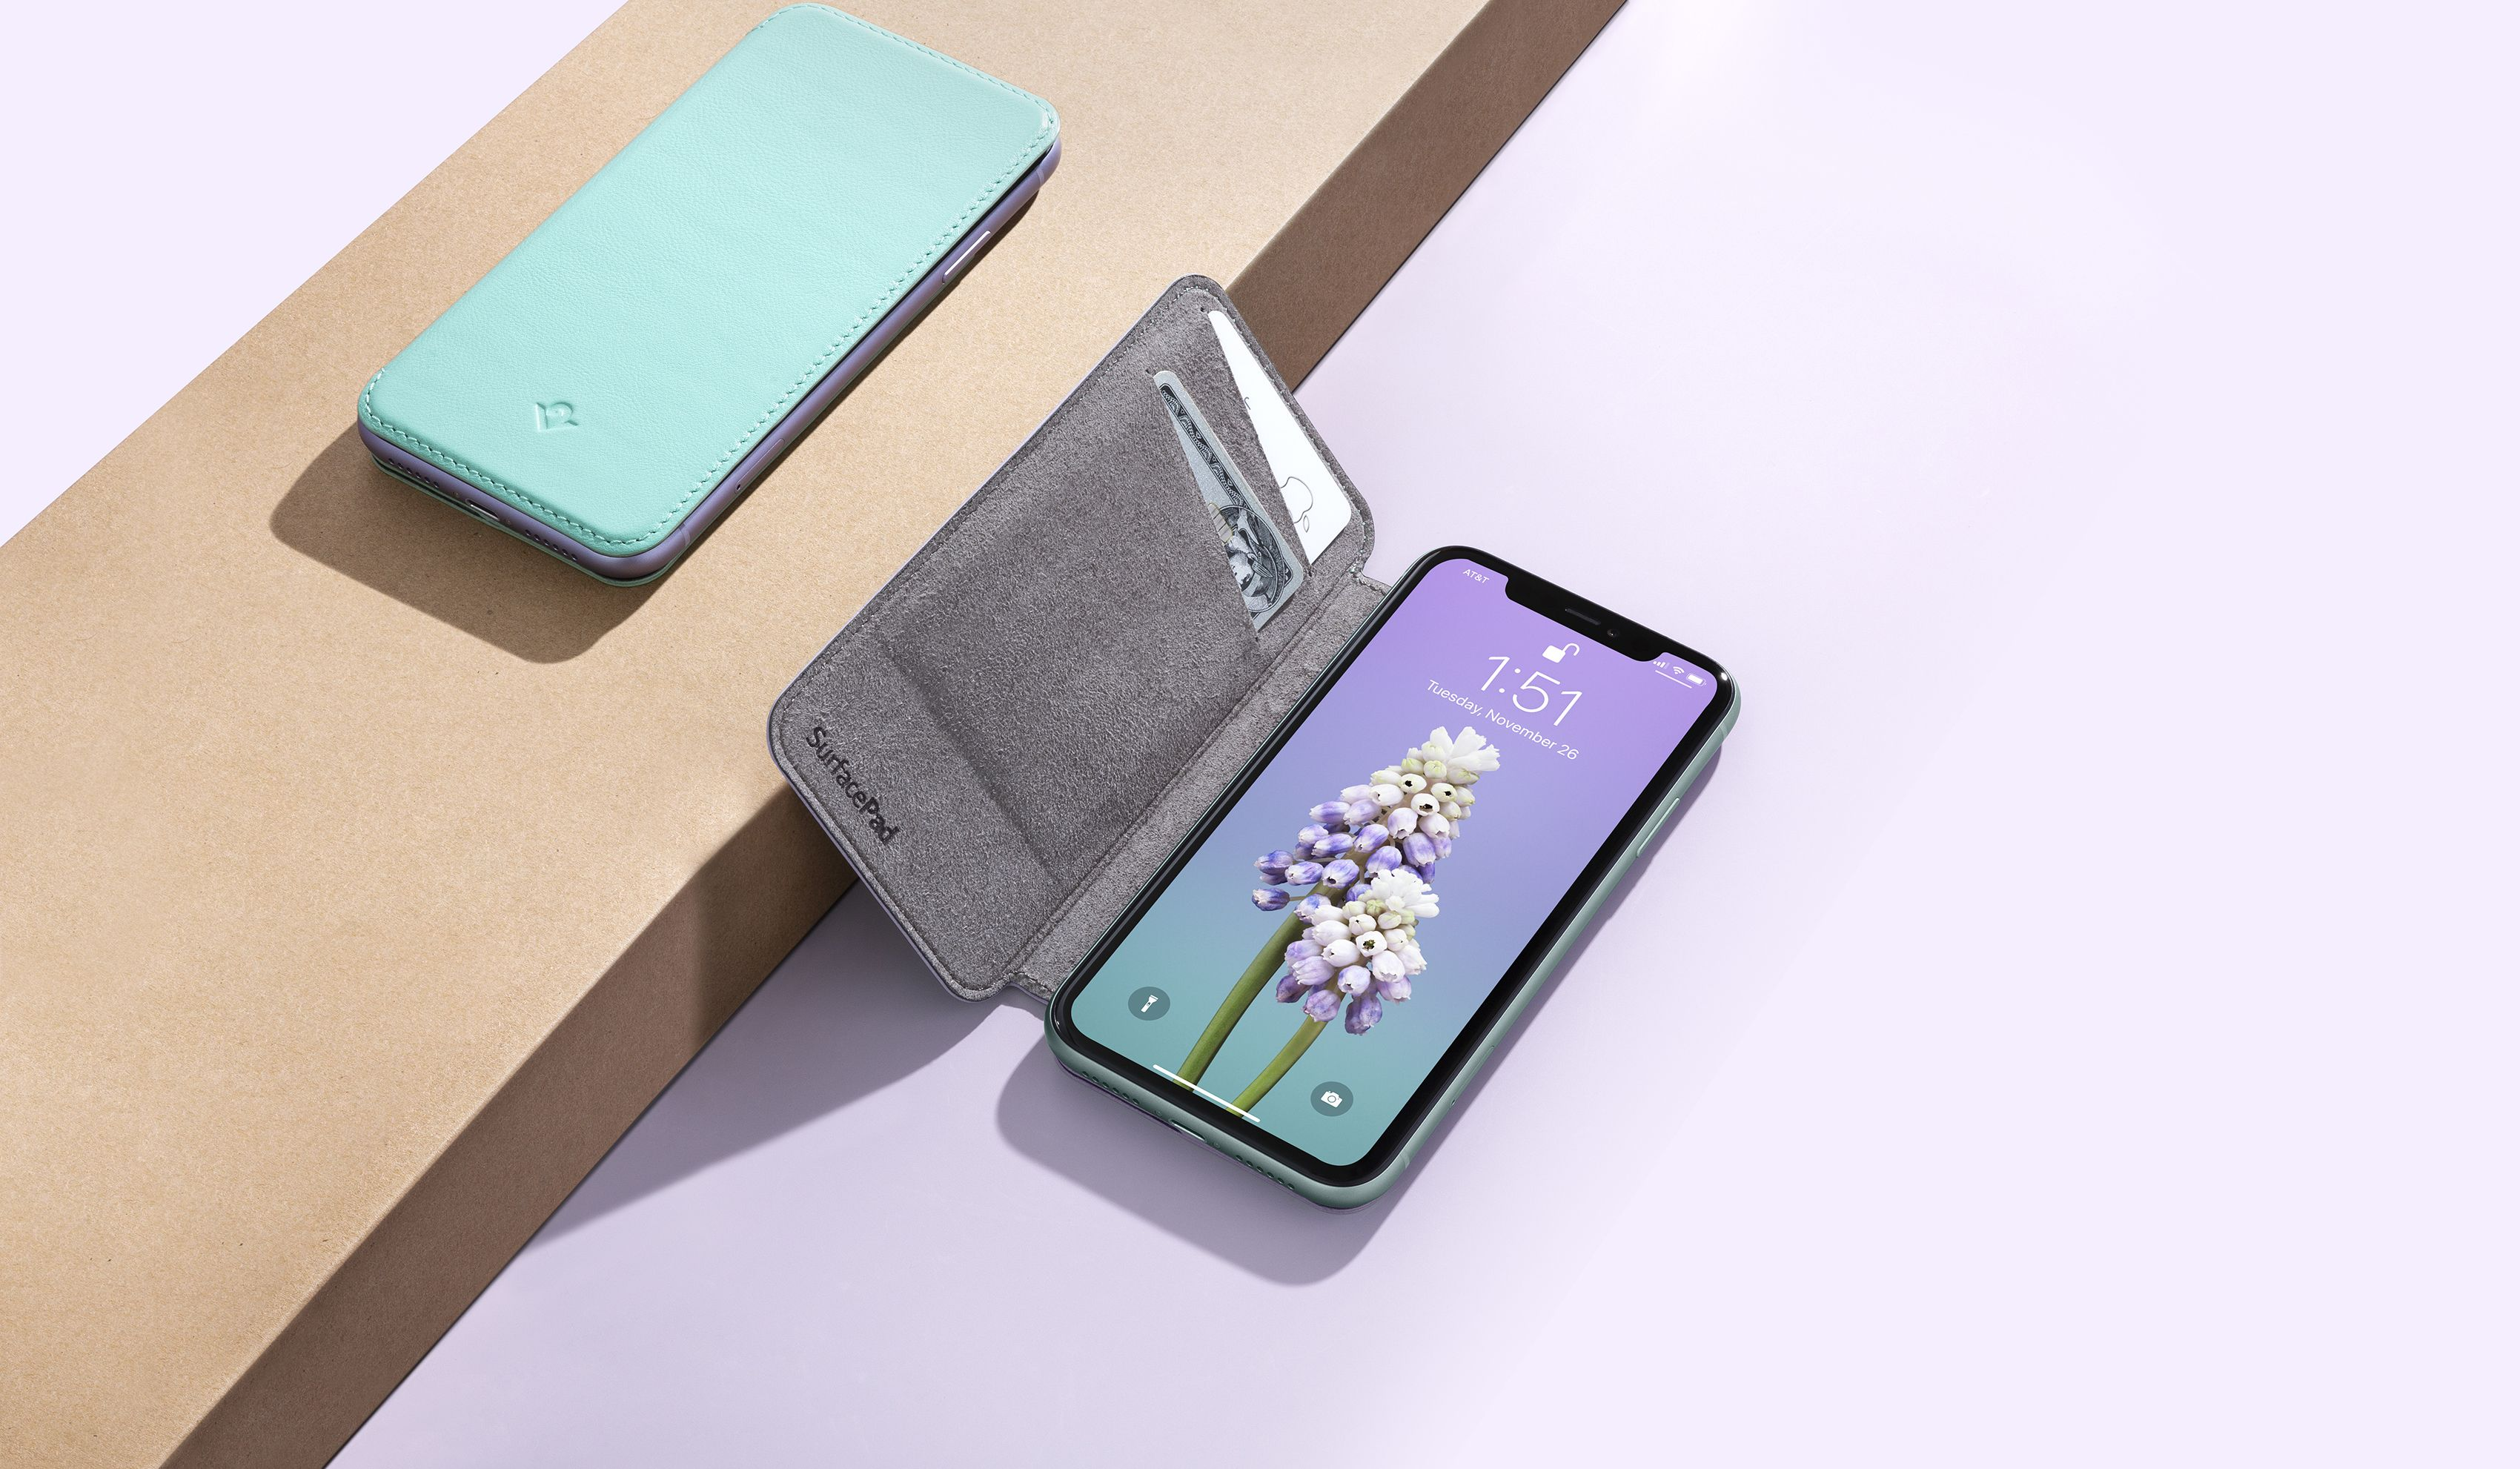 iPhone wallets gift guide smart wallets Twelve South SurfacePad